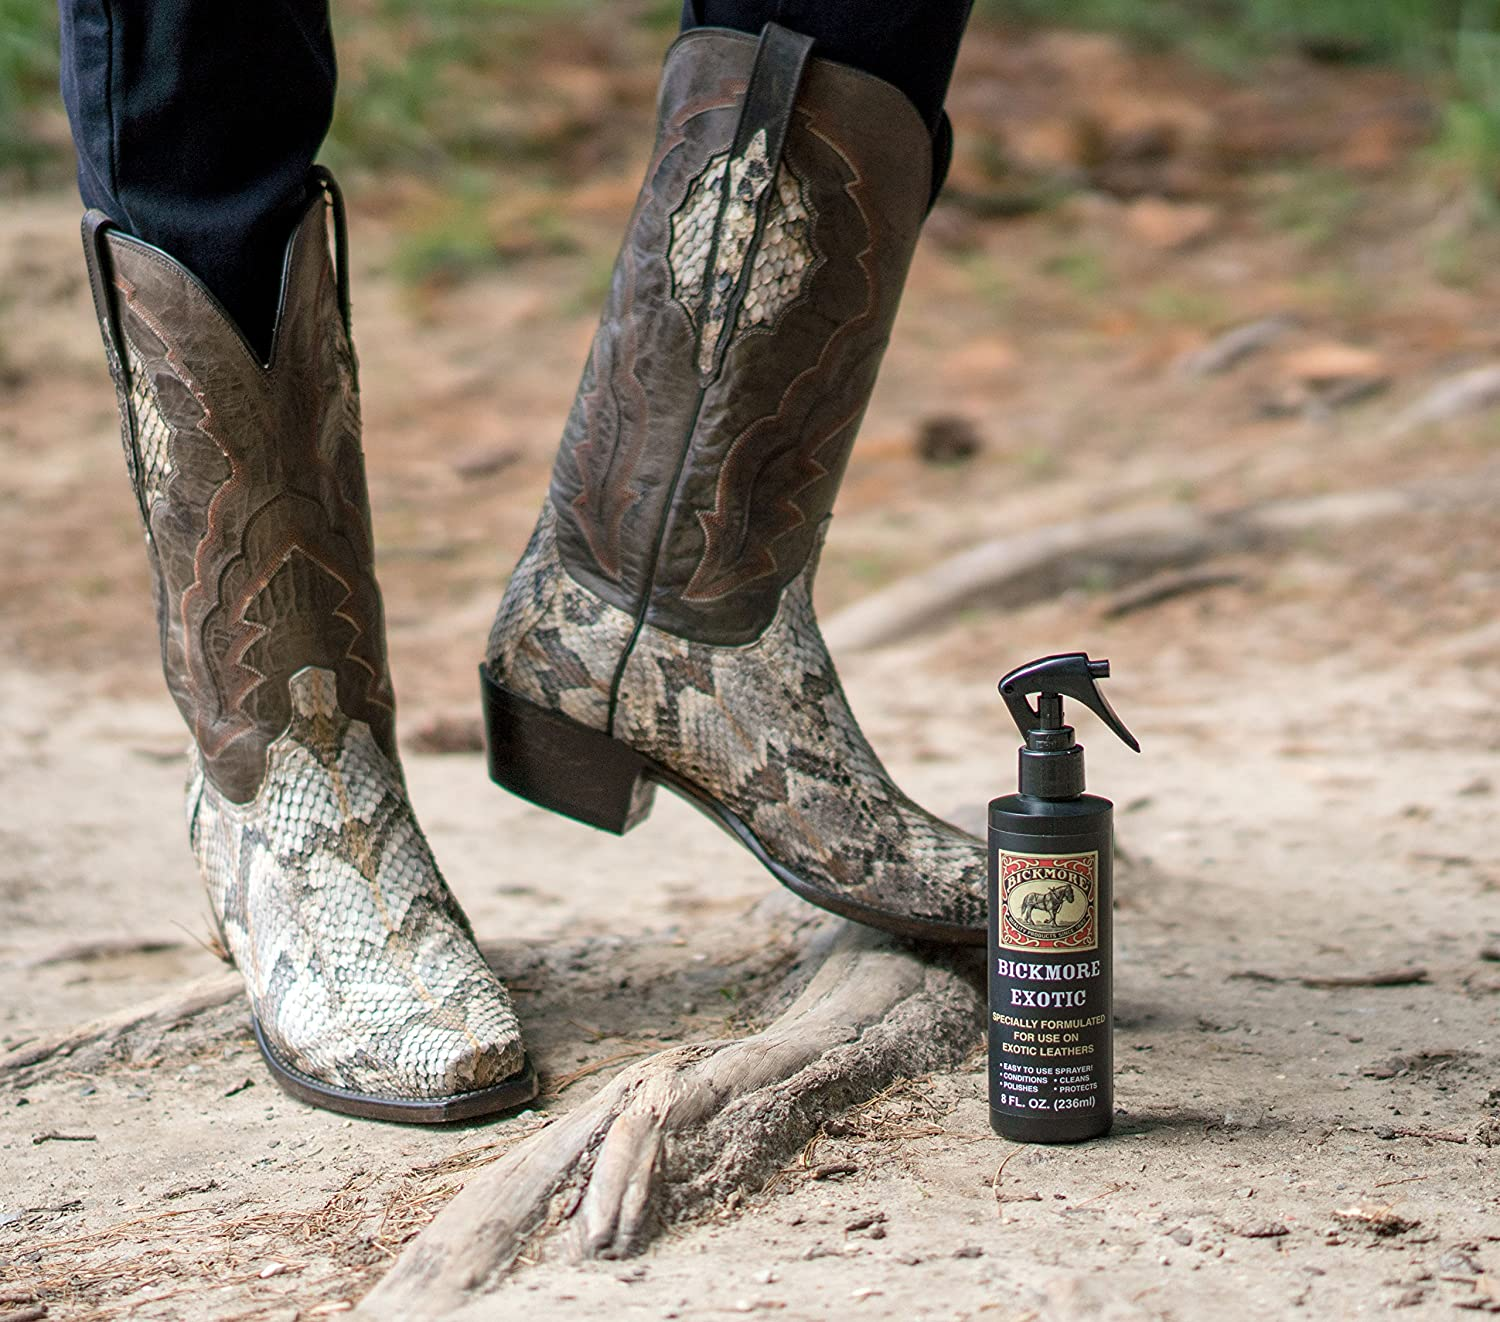 444eebe8821 Bickmore Exotic - Specially Formulated Leather Spray Used to Clean  Condition Polish and Protect Exotic Leathers & Reptile Skins, 8oz